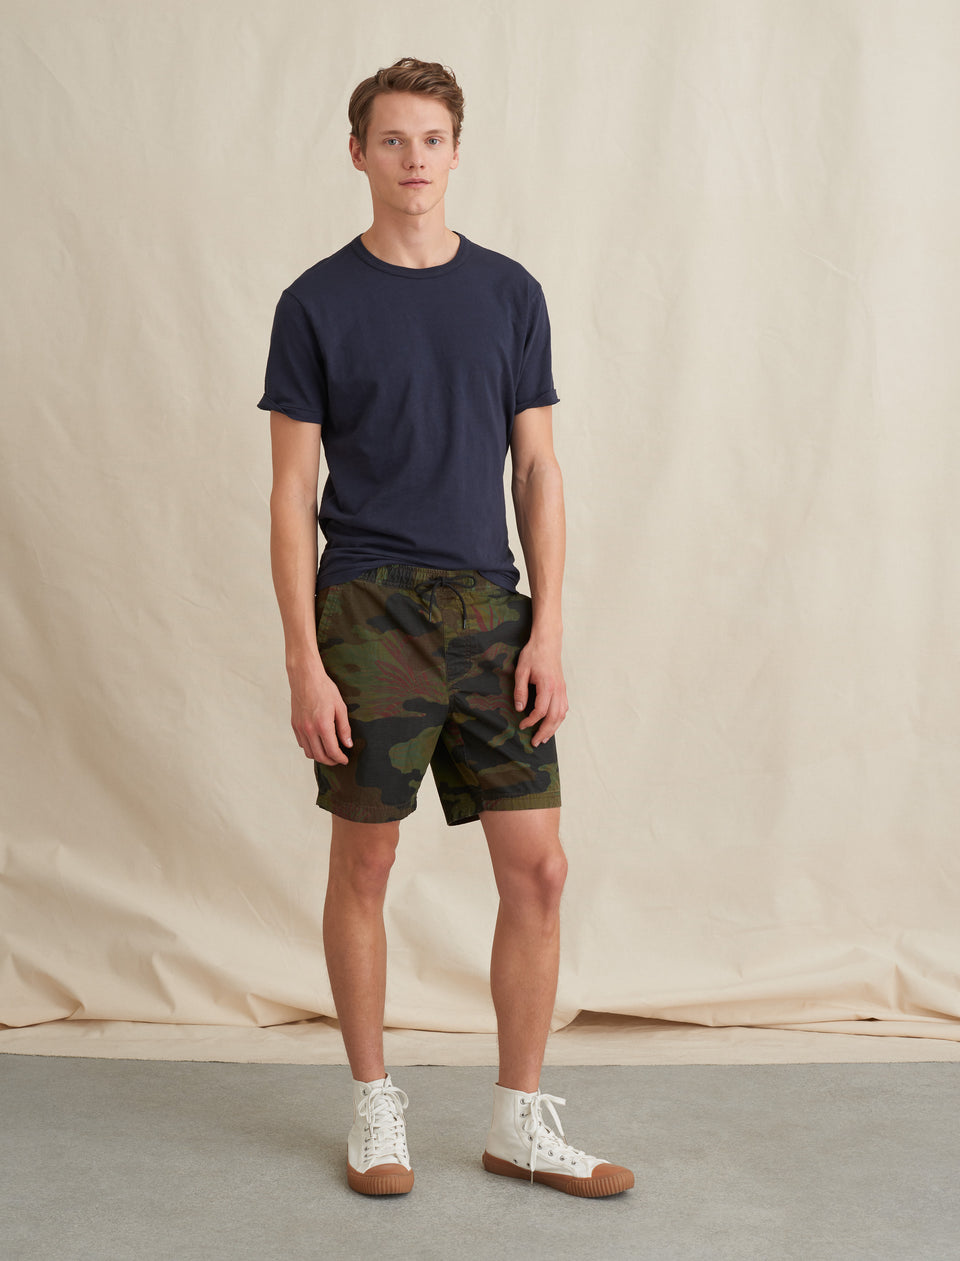 All-Terrain Short